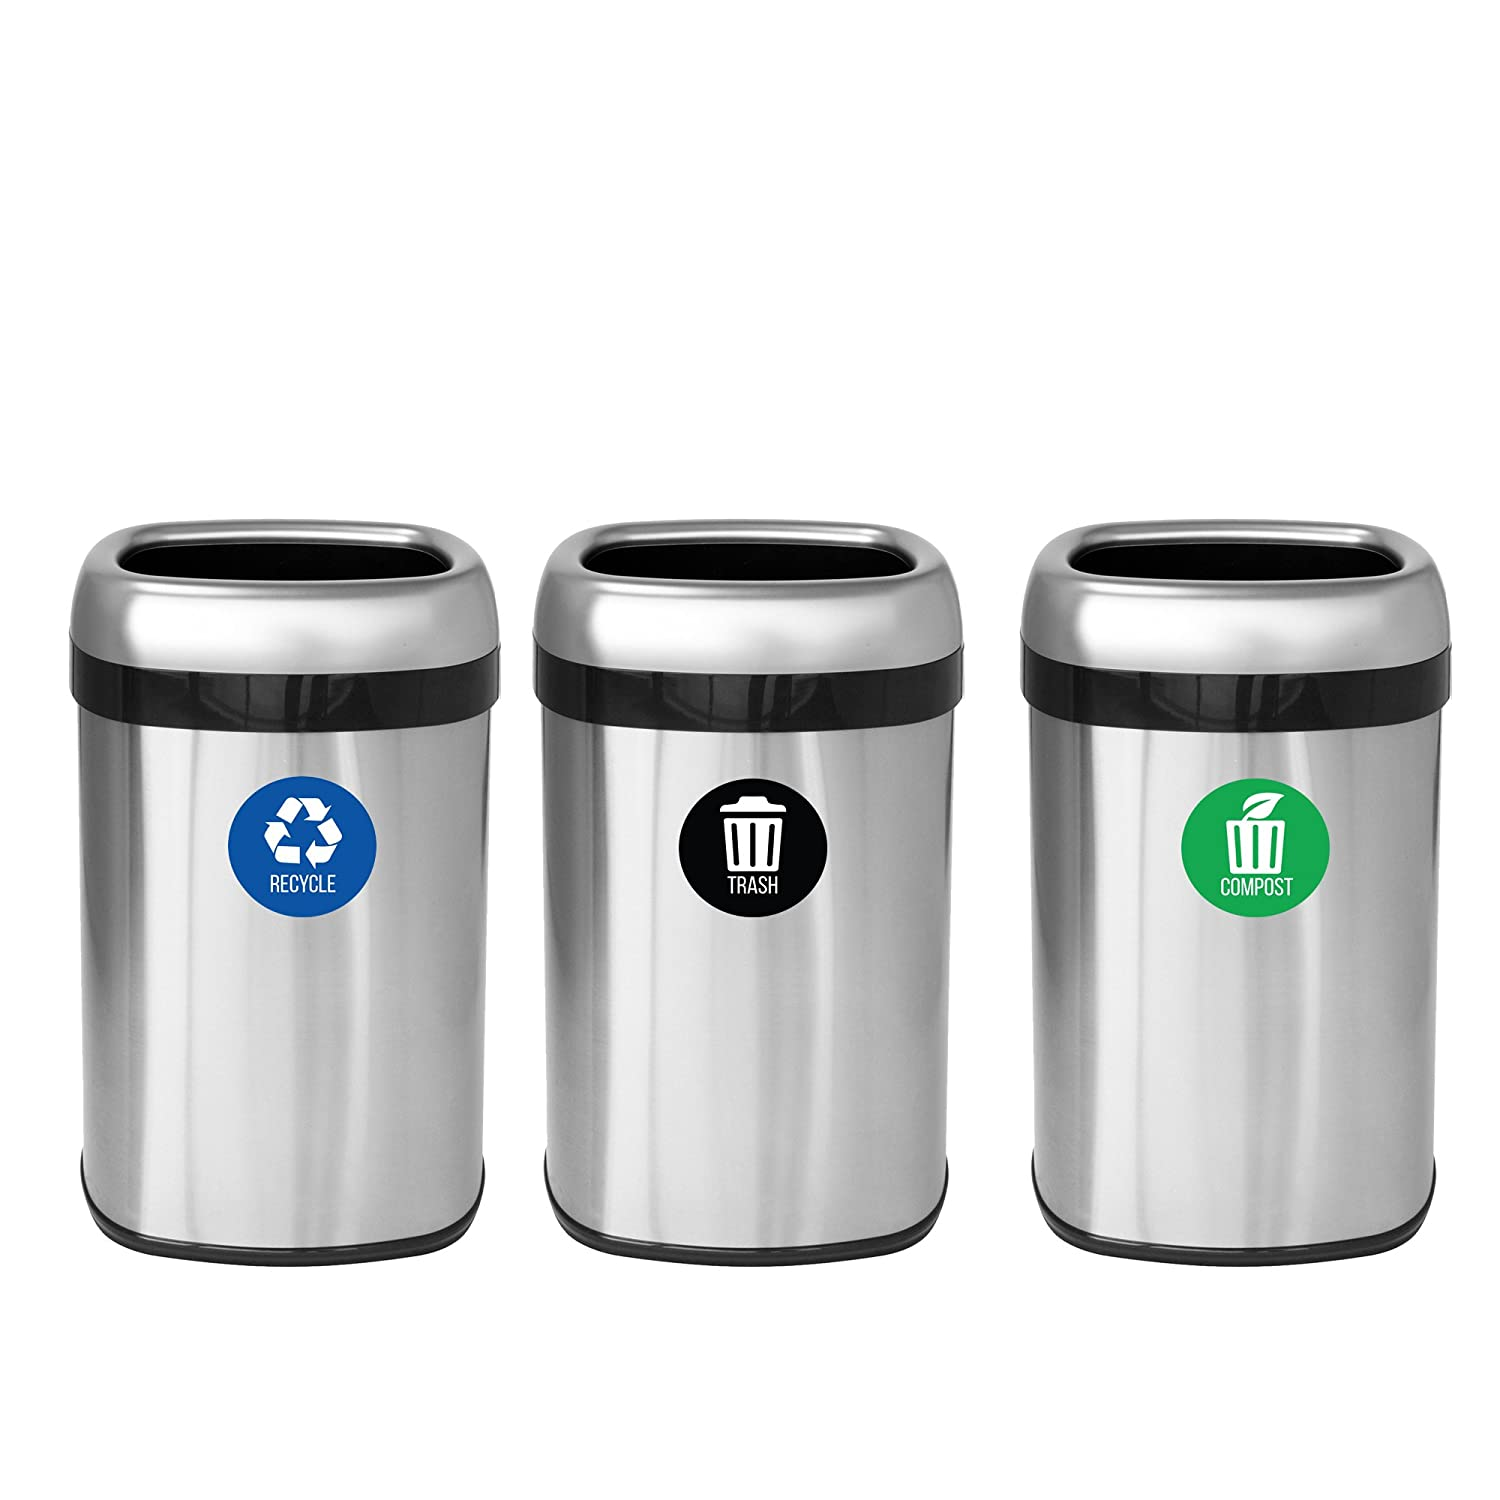 Amazon.com: iTouchless Trash Stickers Premium Vinyl Decals for ...